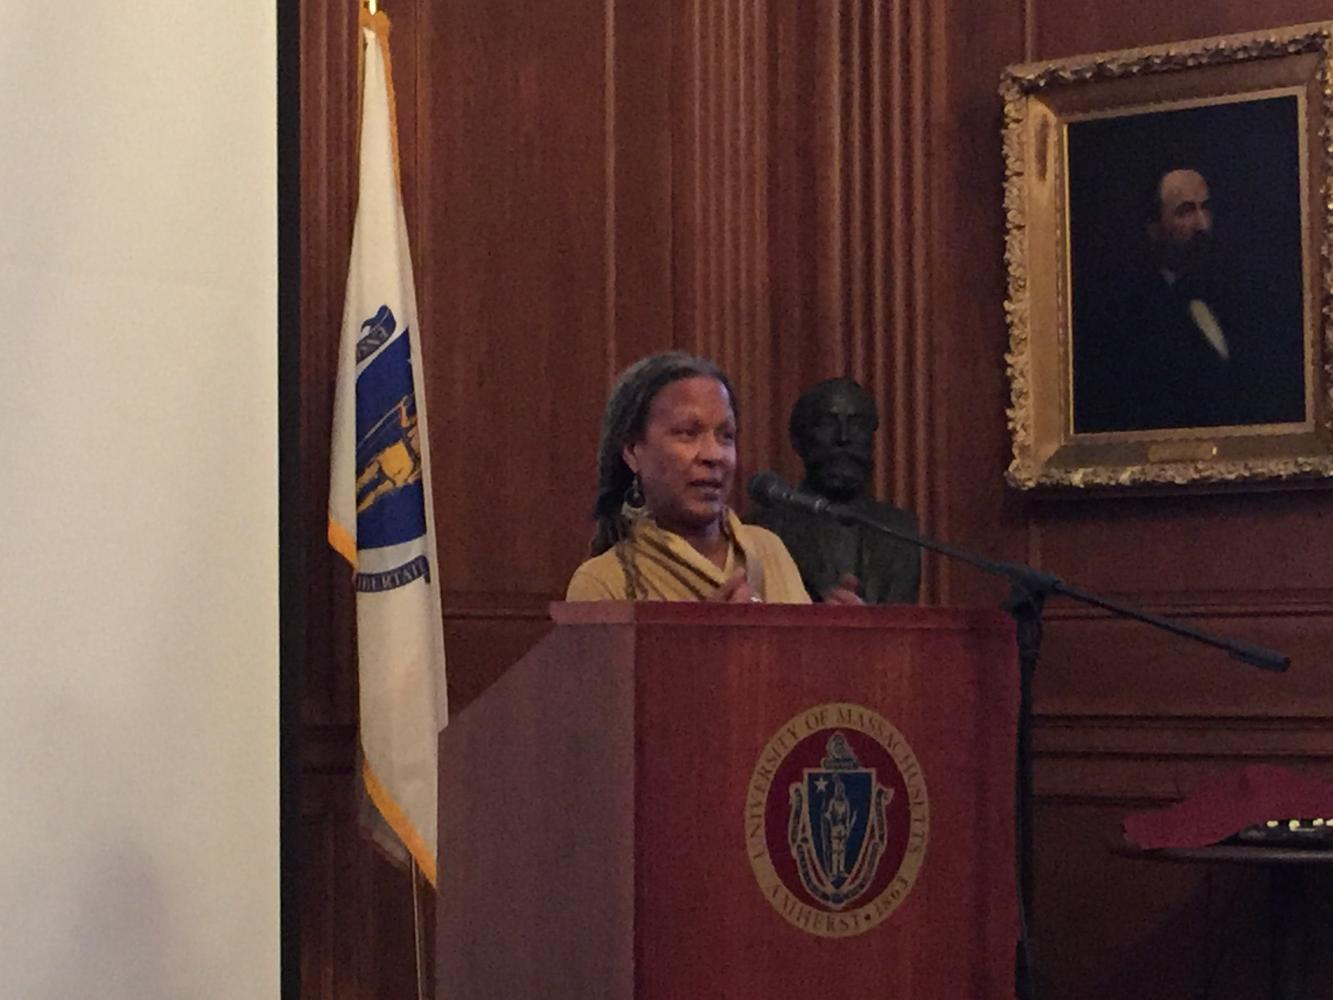 Lecia Brooks addresses UMass Amherst about the current state of hate and extremist groups in the United States.